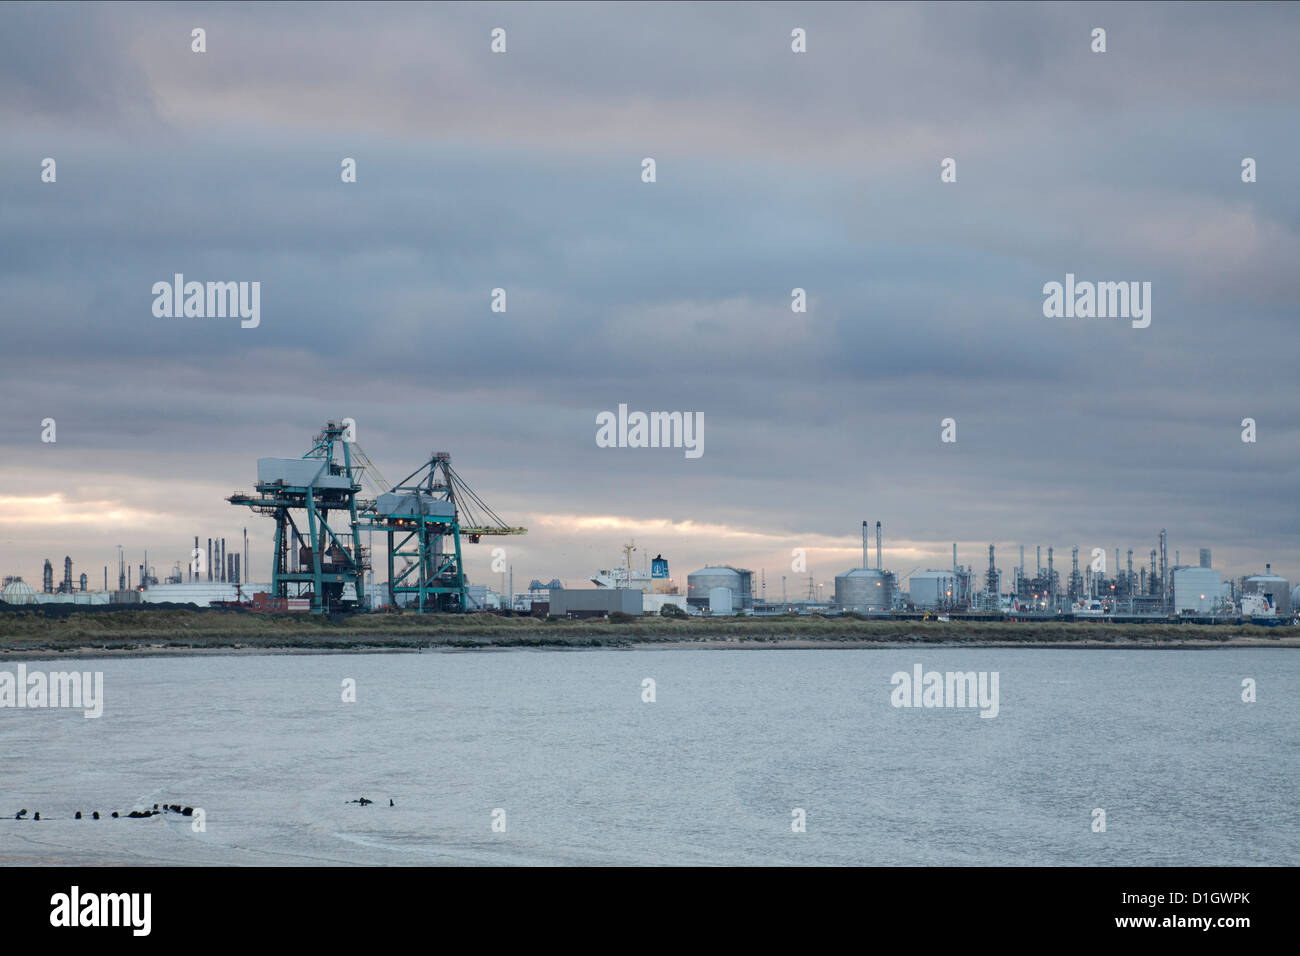 Teesside heavy industry seen from the South Gare of the River Tees at sunset. - Stock Image